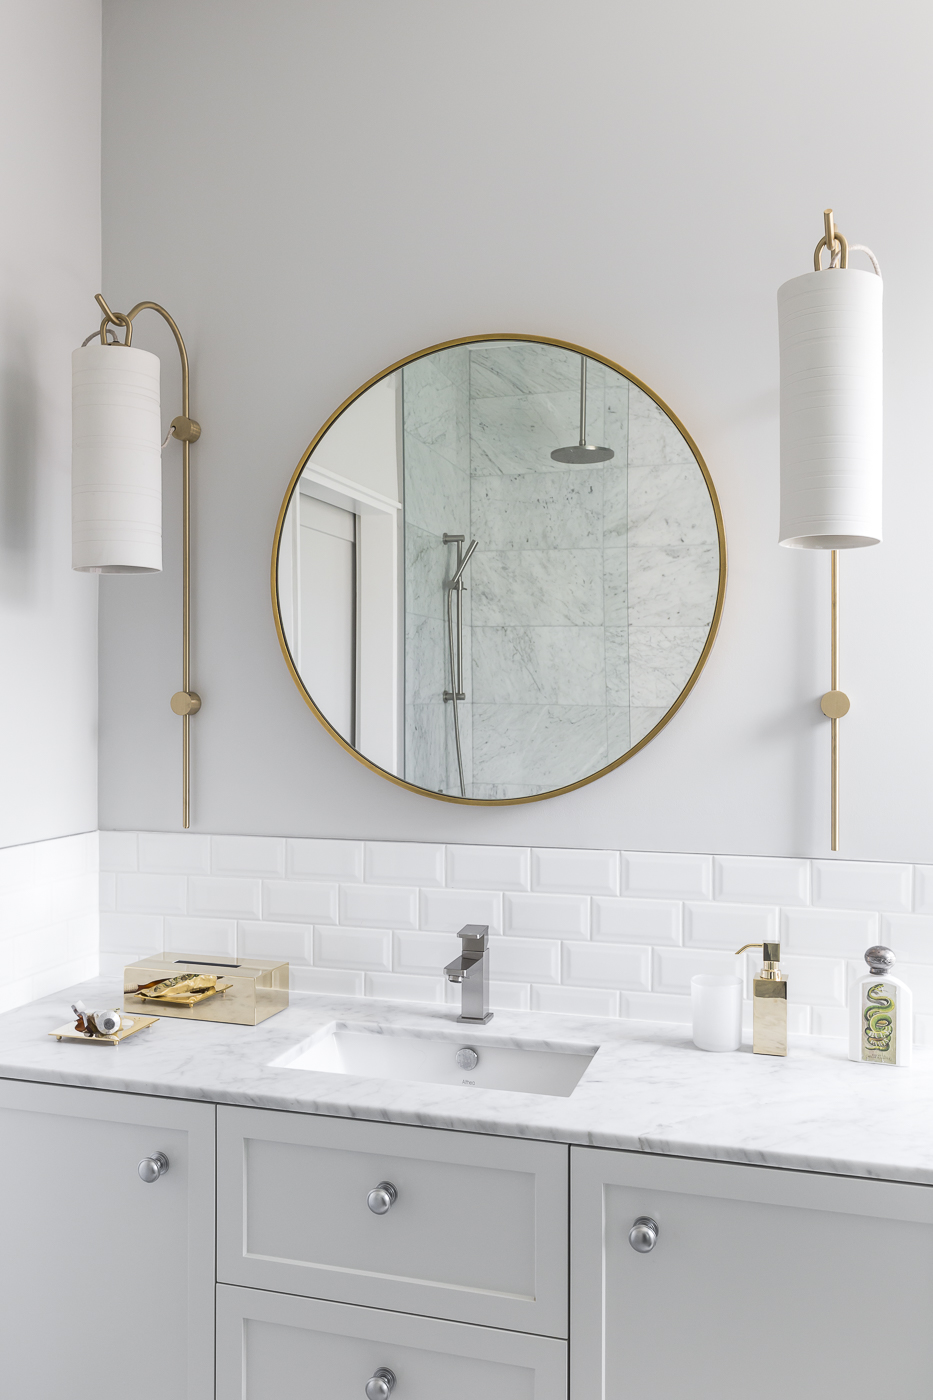 Generous wall light fittings complement a simple and yet luxurious master ensuite.